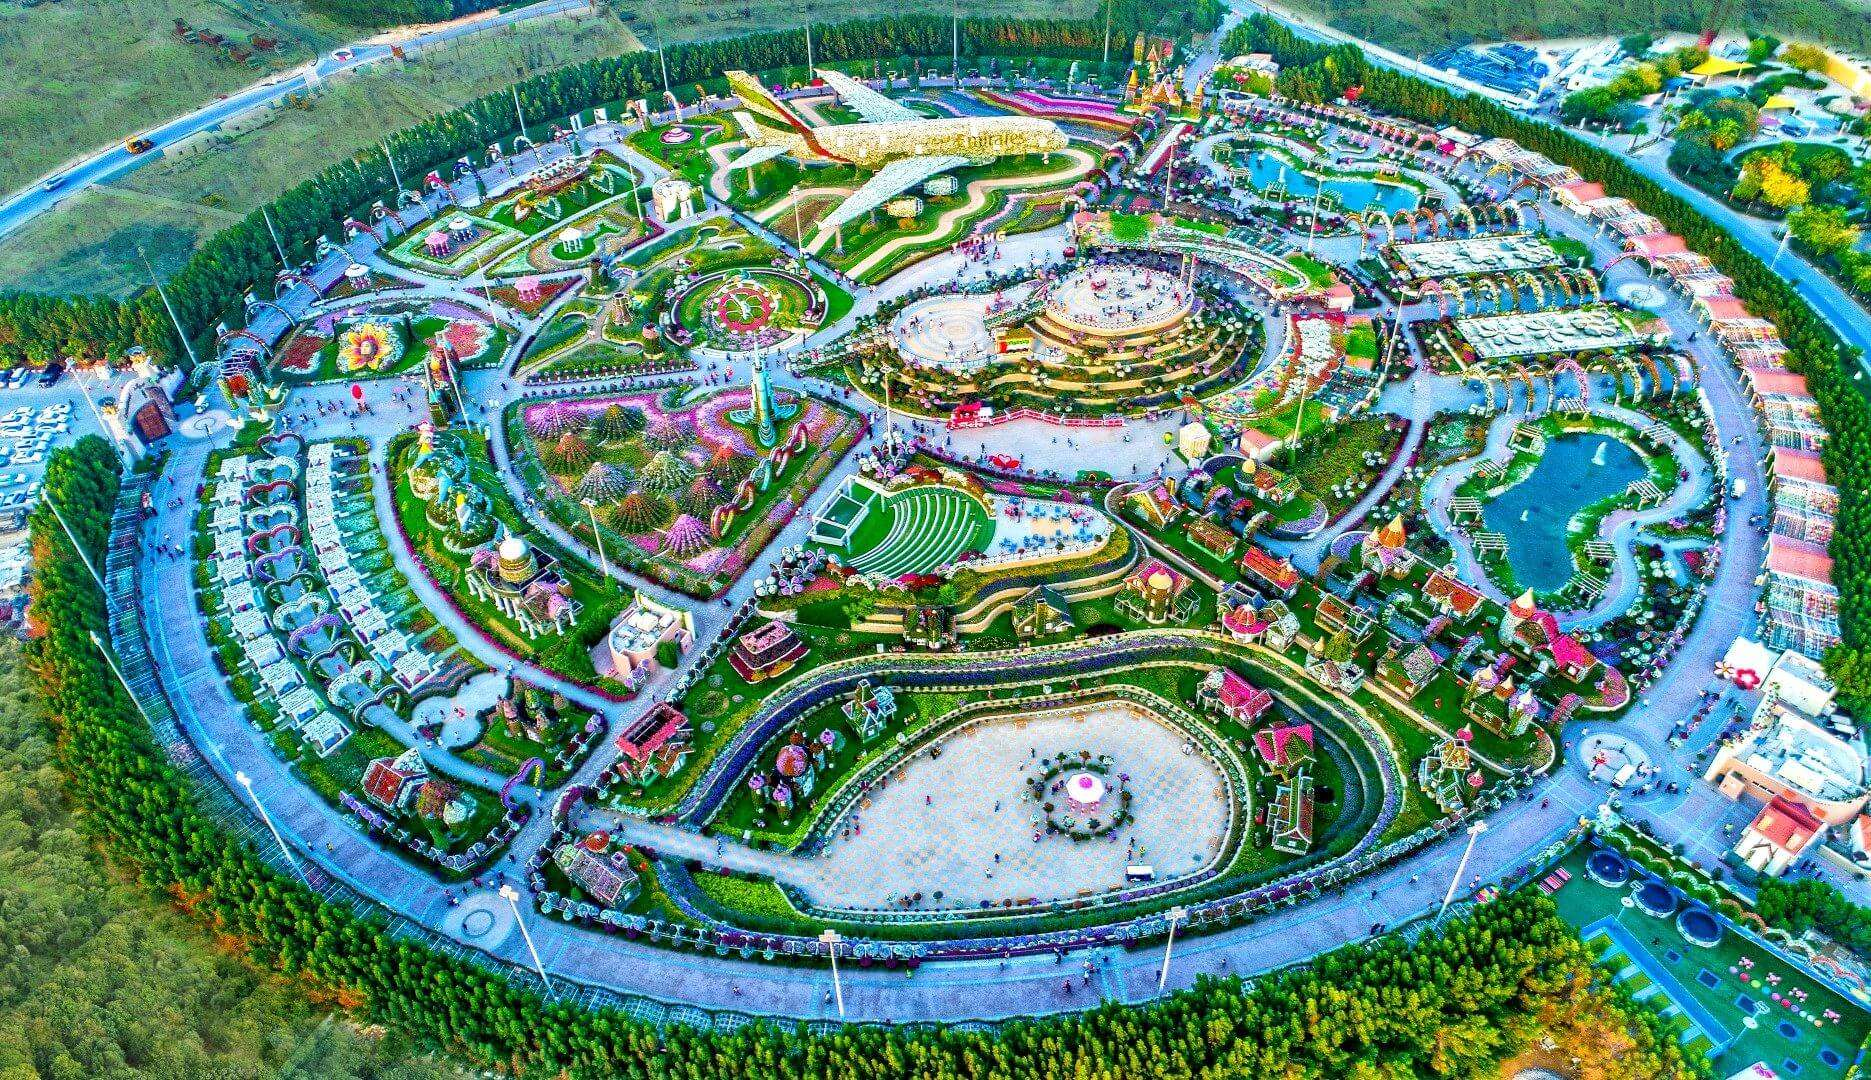 view of Dubai Miracle Garden